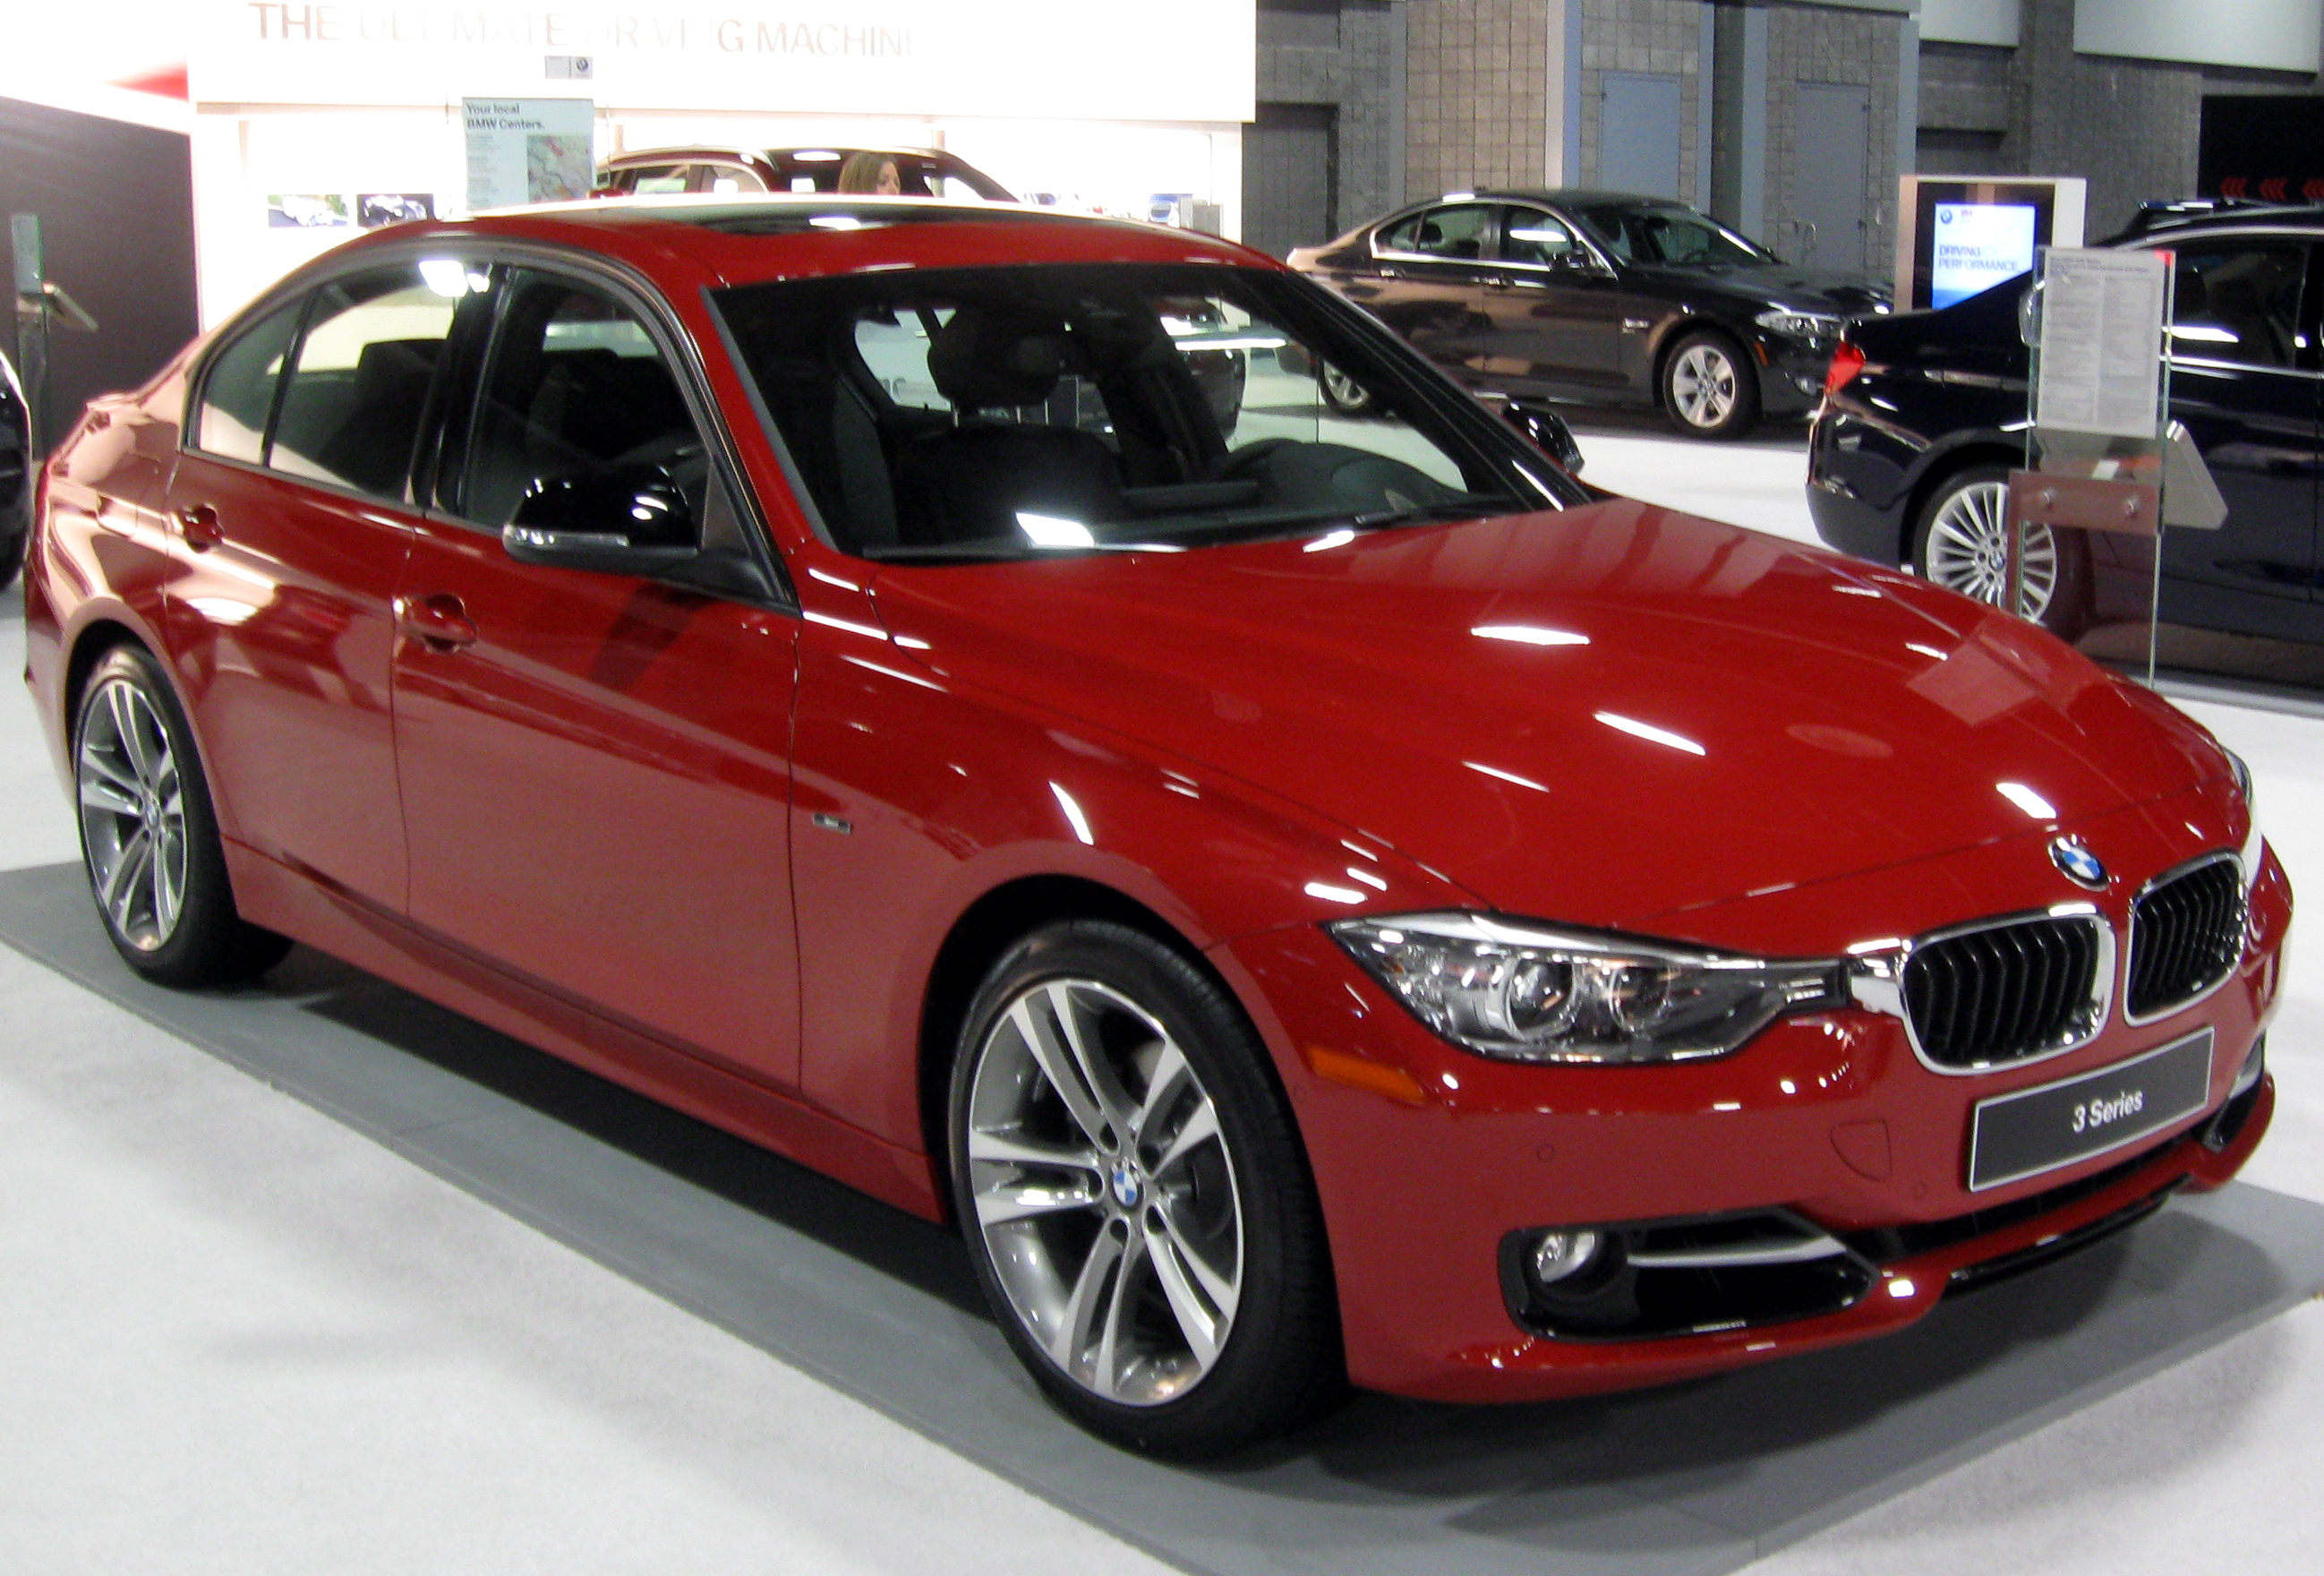 file 2012 bmw 328i sedan 2012 dc jpg. Black Bedroom Furniture Sets. Home Design Ideas